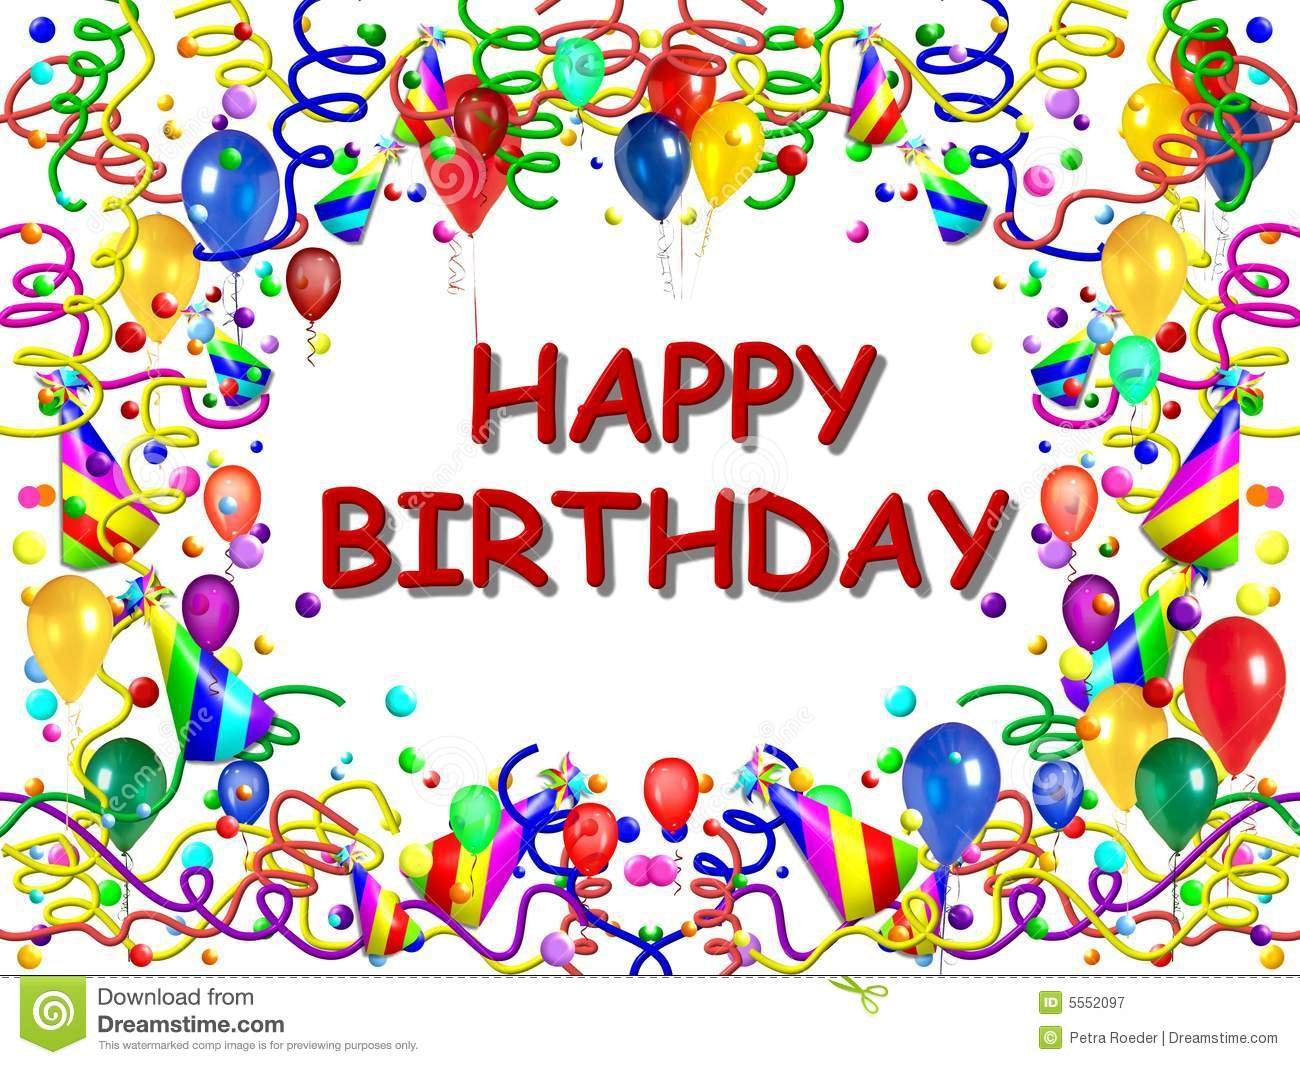 Colorful poster or background with the centered words happy birthday